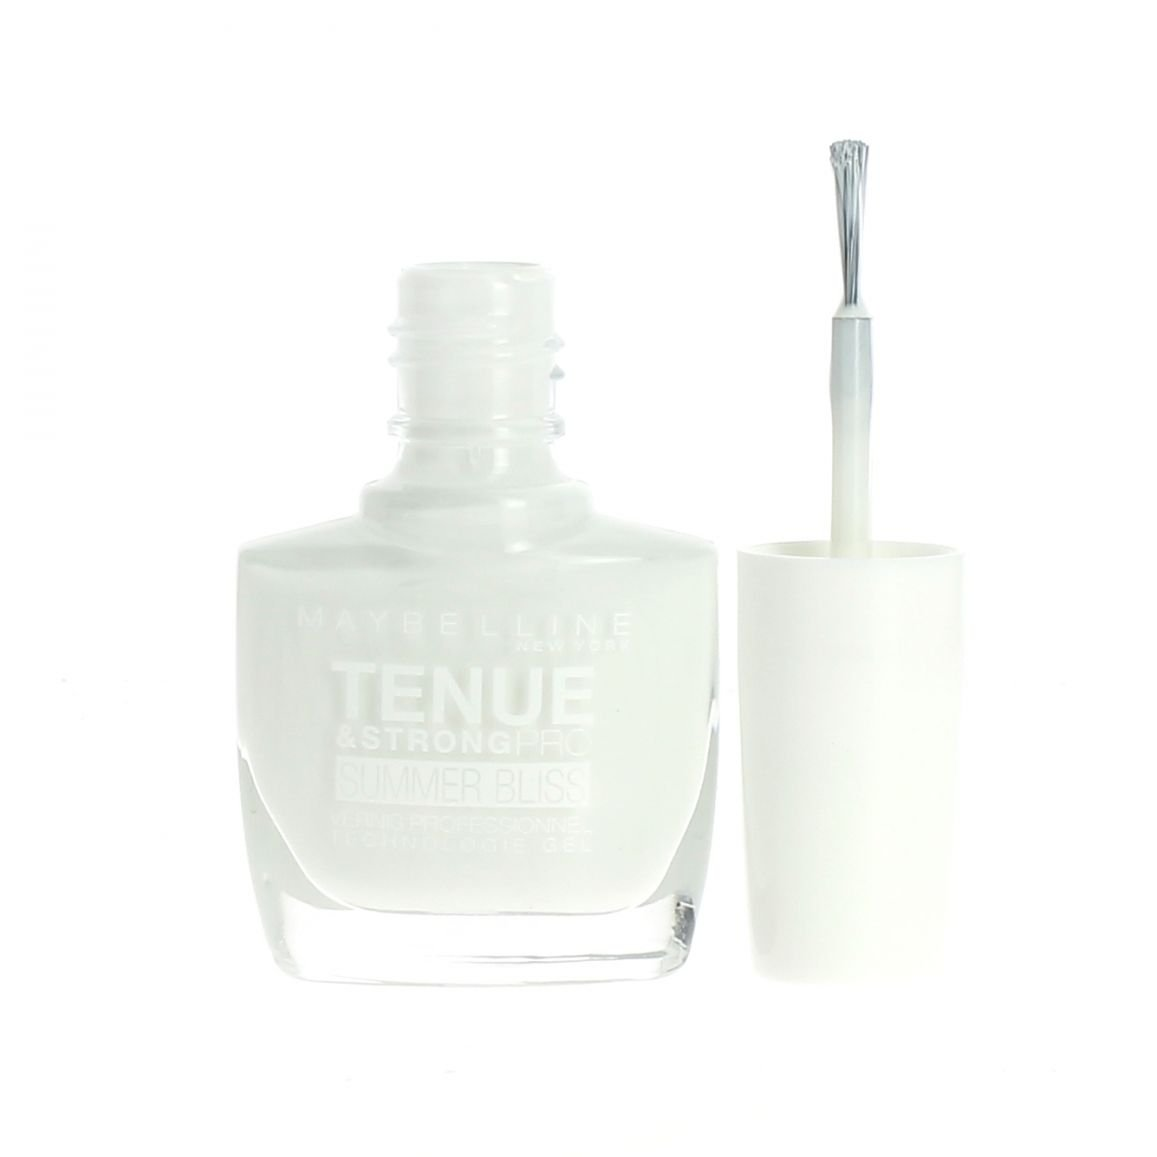 Gemey Maybelline Vernis Tenue & Strong Pro Summer - 871 White Sail